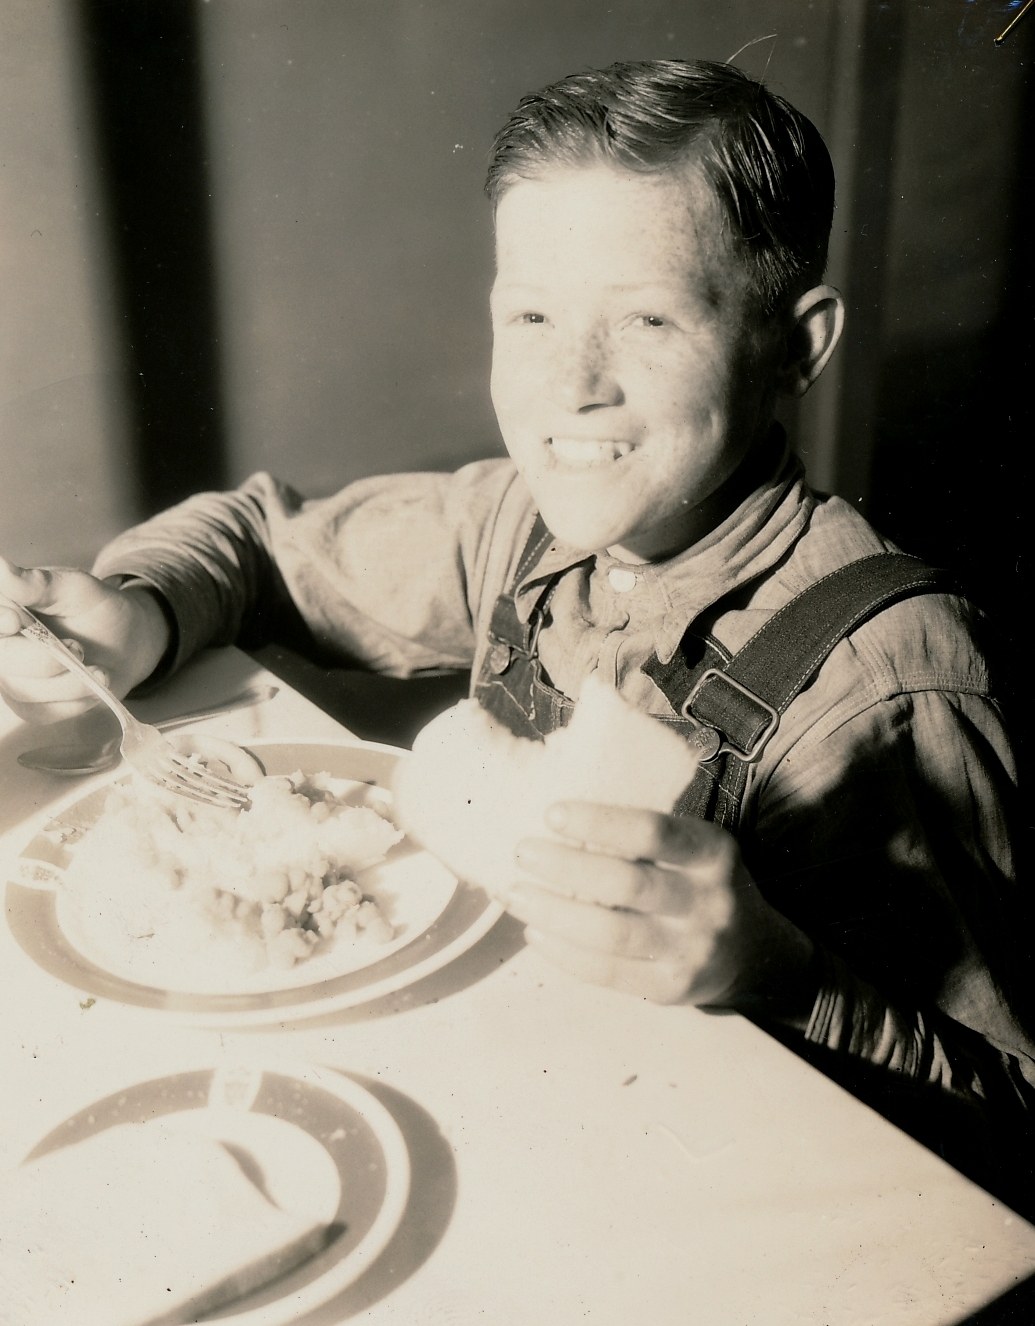 A WPA hot lunch is appreciated in Greenville, South Carolina. Photo courtesy of the National Archives (1938).